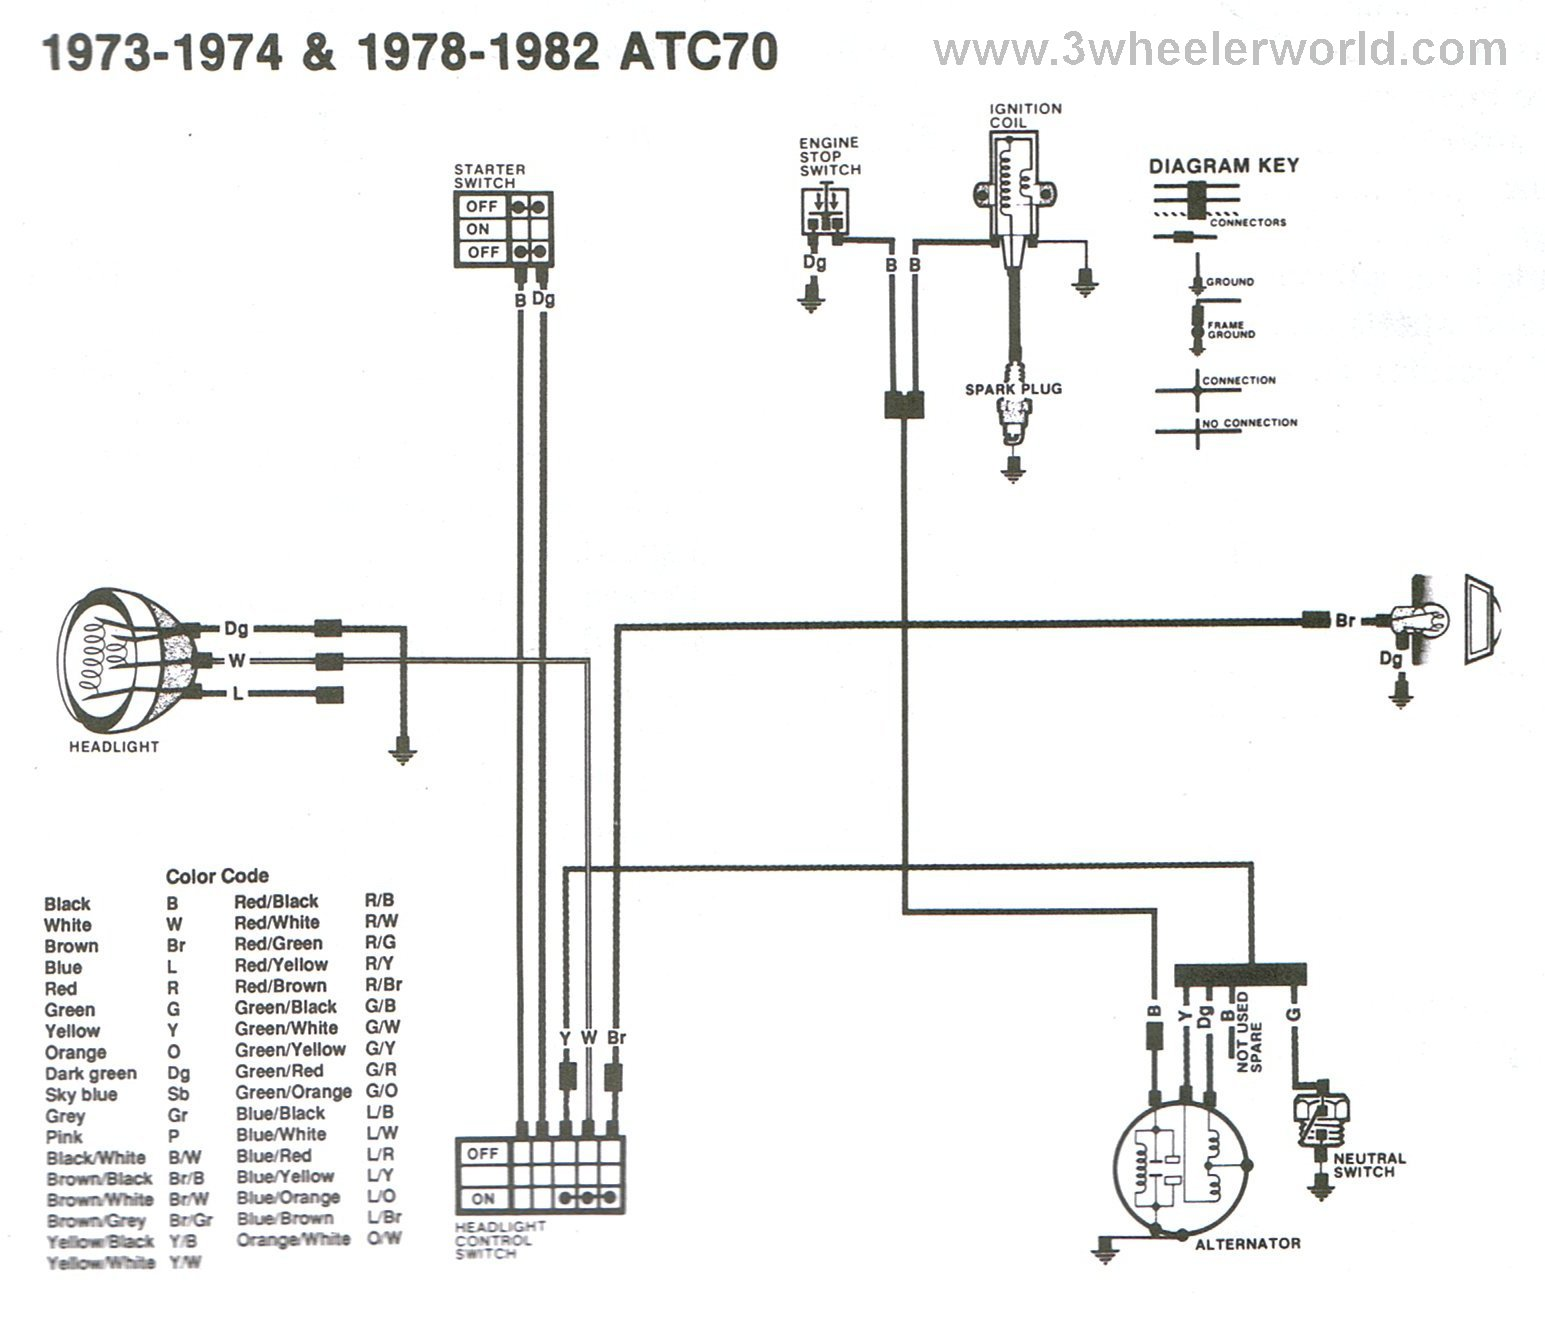 post 4946 1235948993 atc 70 wiring diagram honda 70 talk dumont dune riders atc 70 wiring diagram at sewacar.co